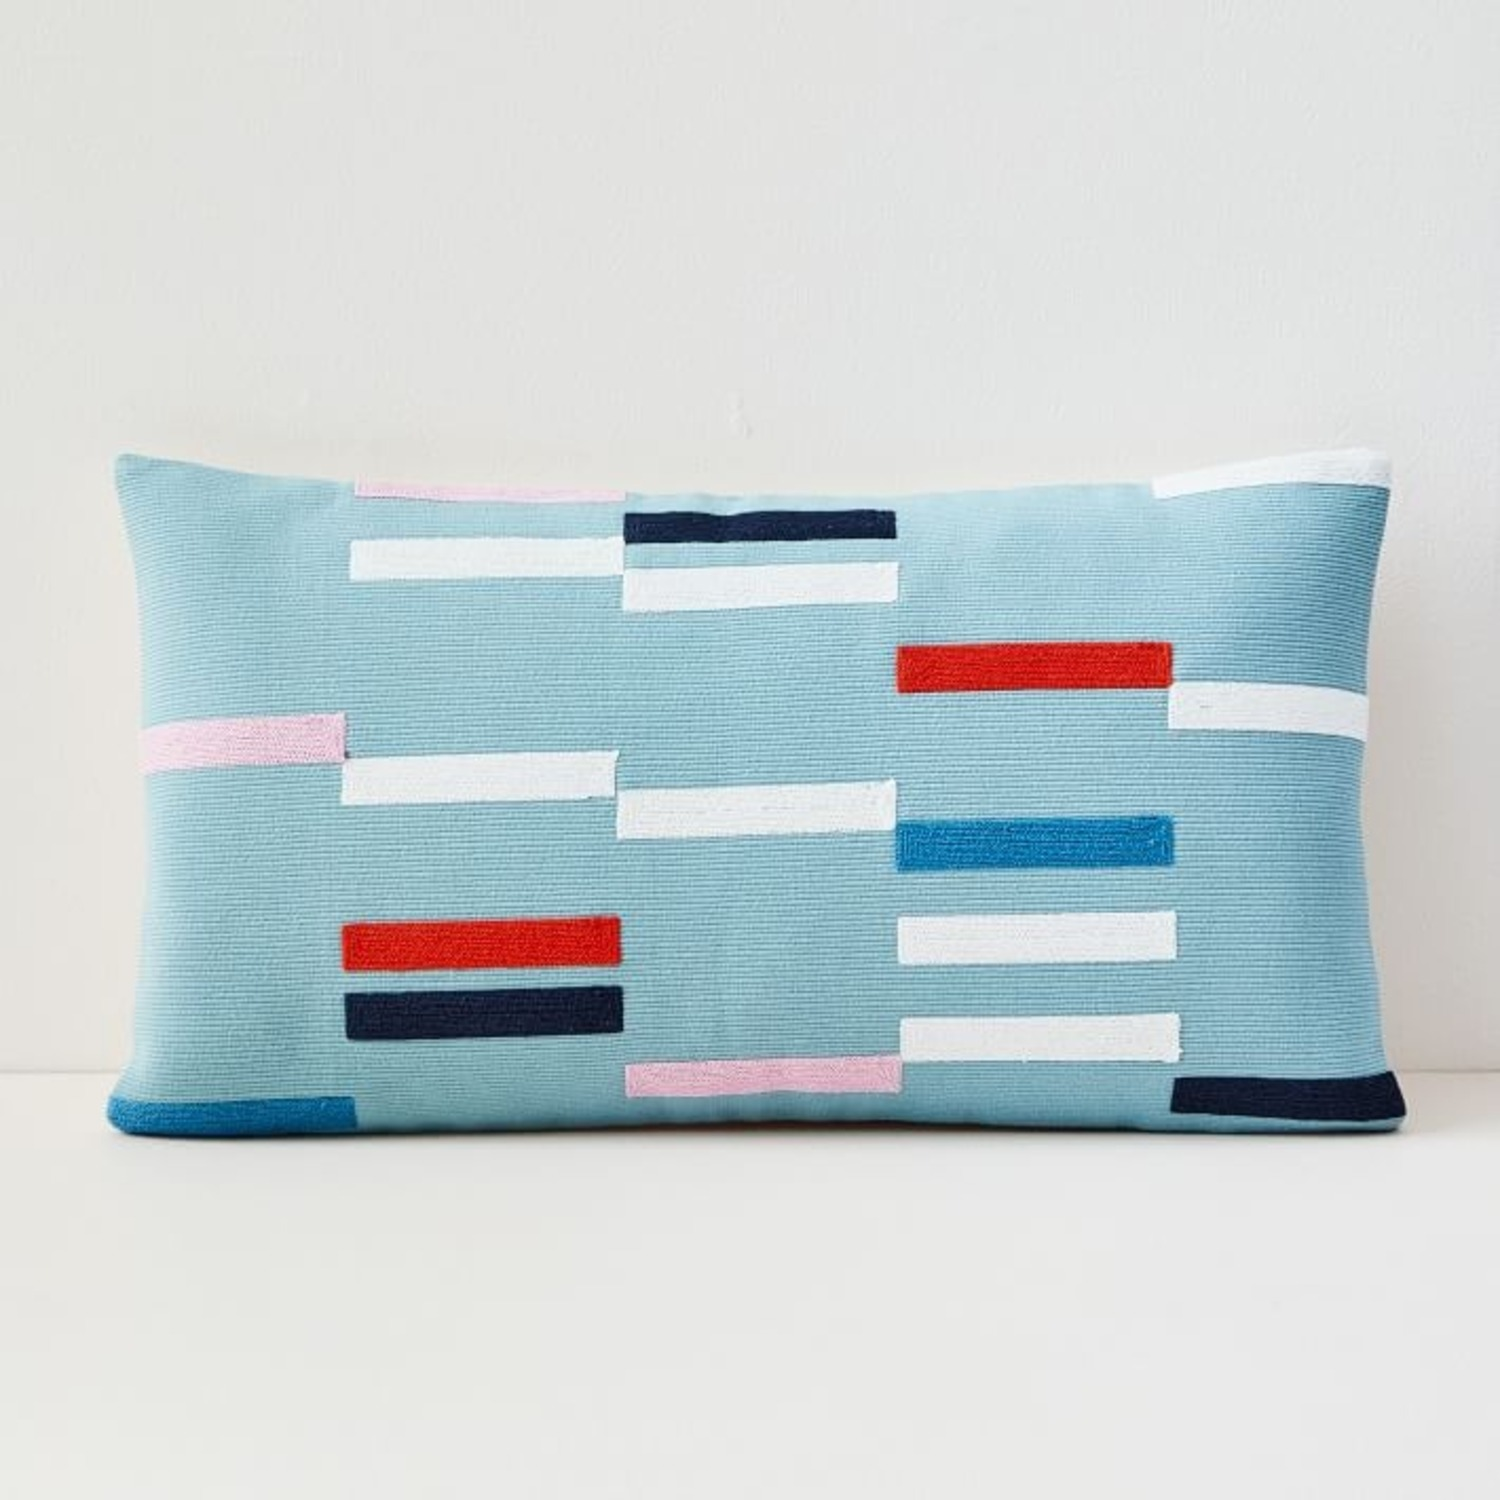 West Elm Margo Selby Staggered Stripe Pillow Cover - image-1